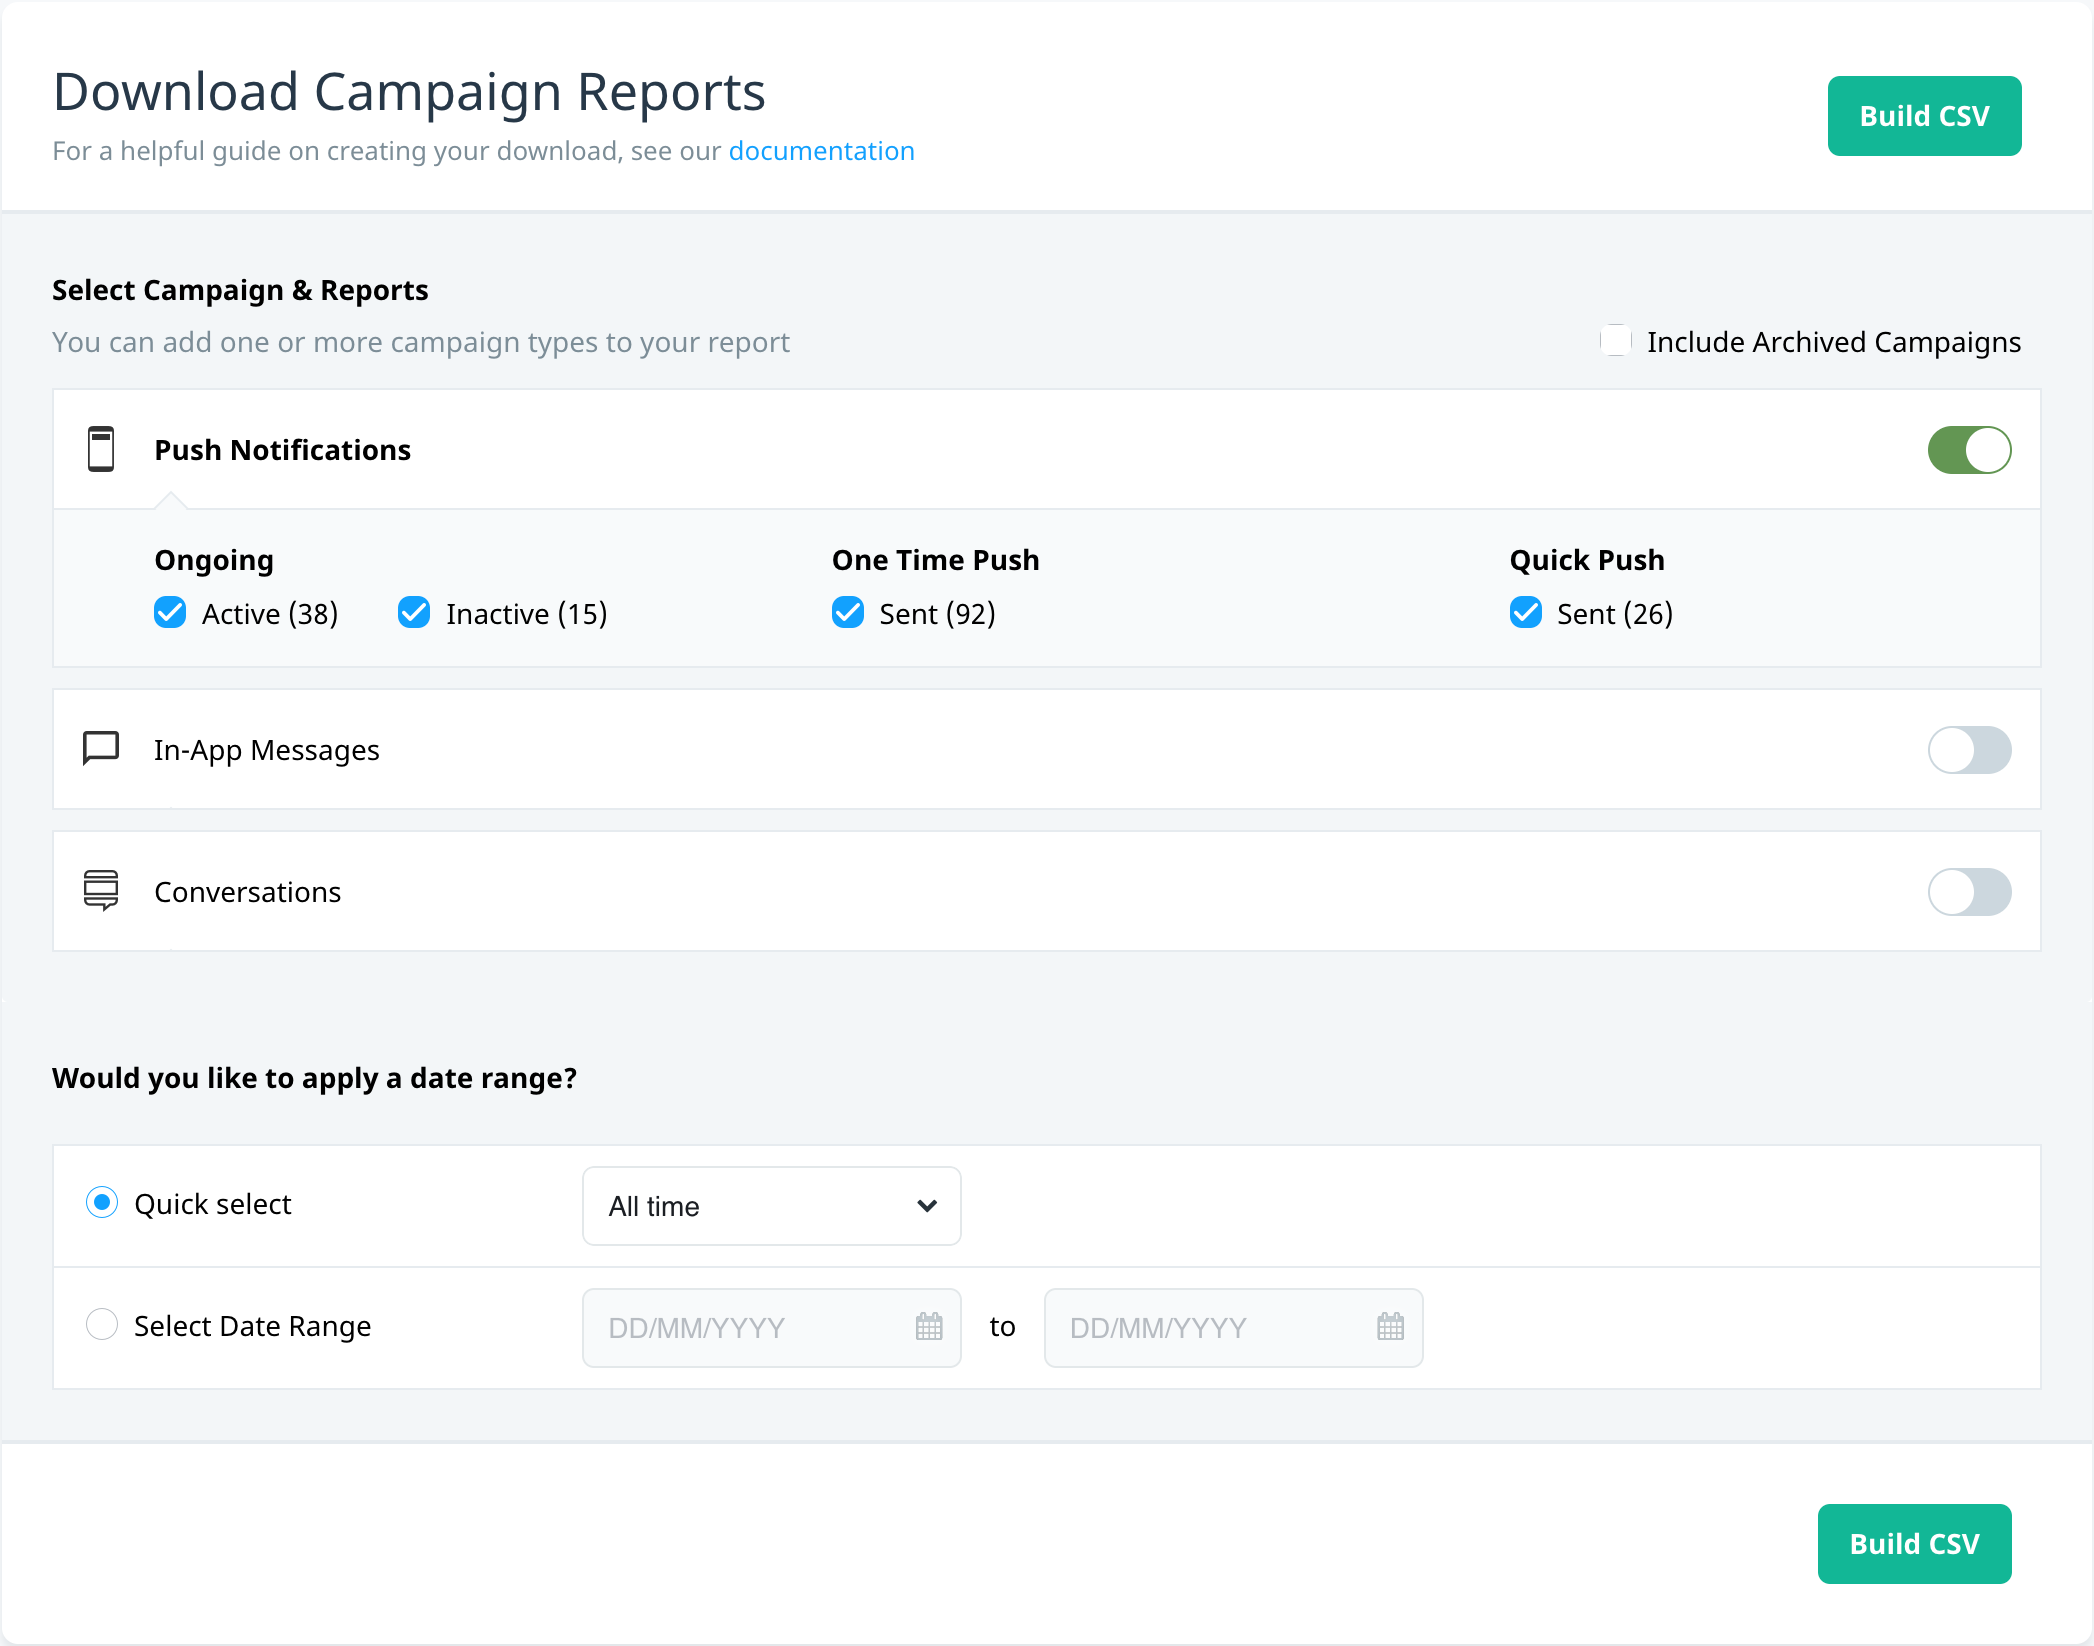 Download campaign reports screen